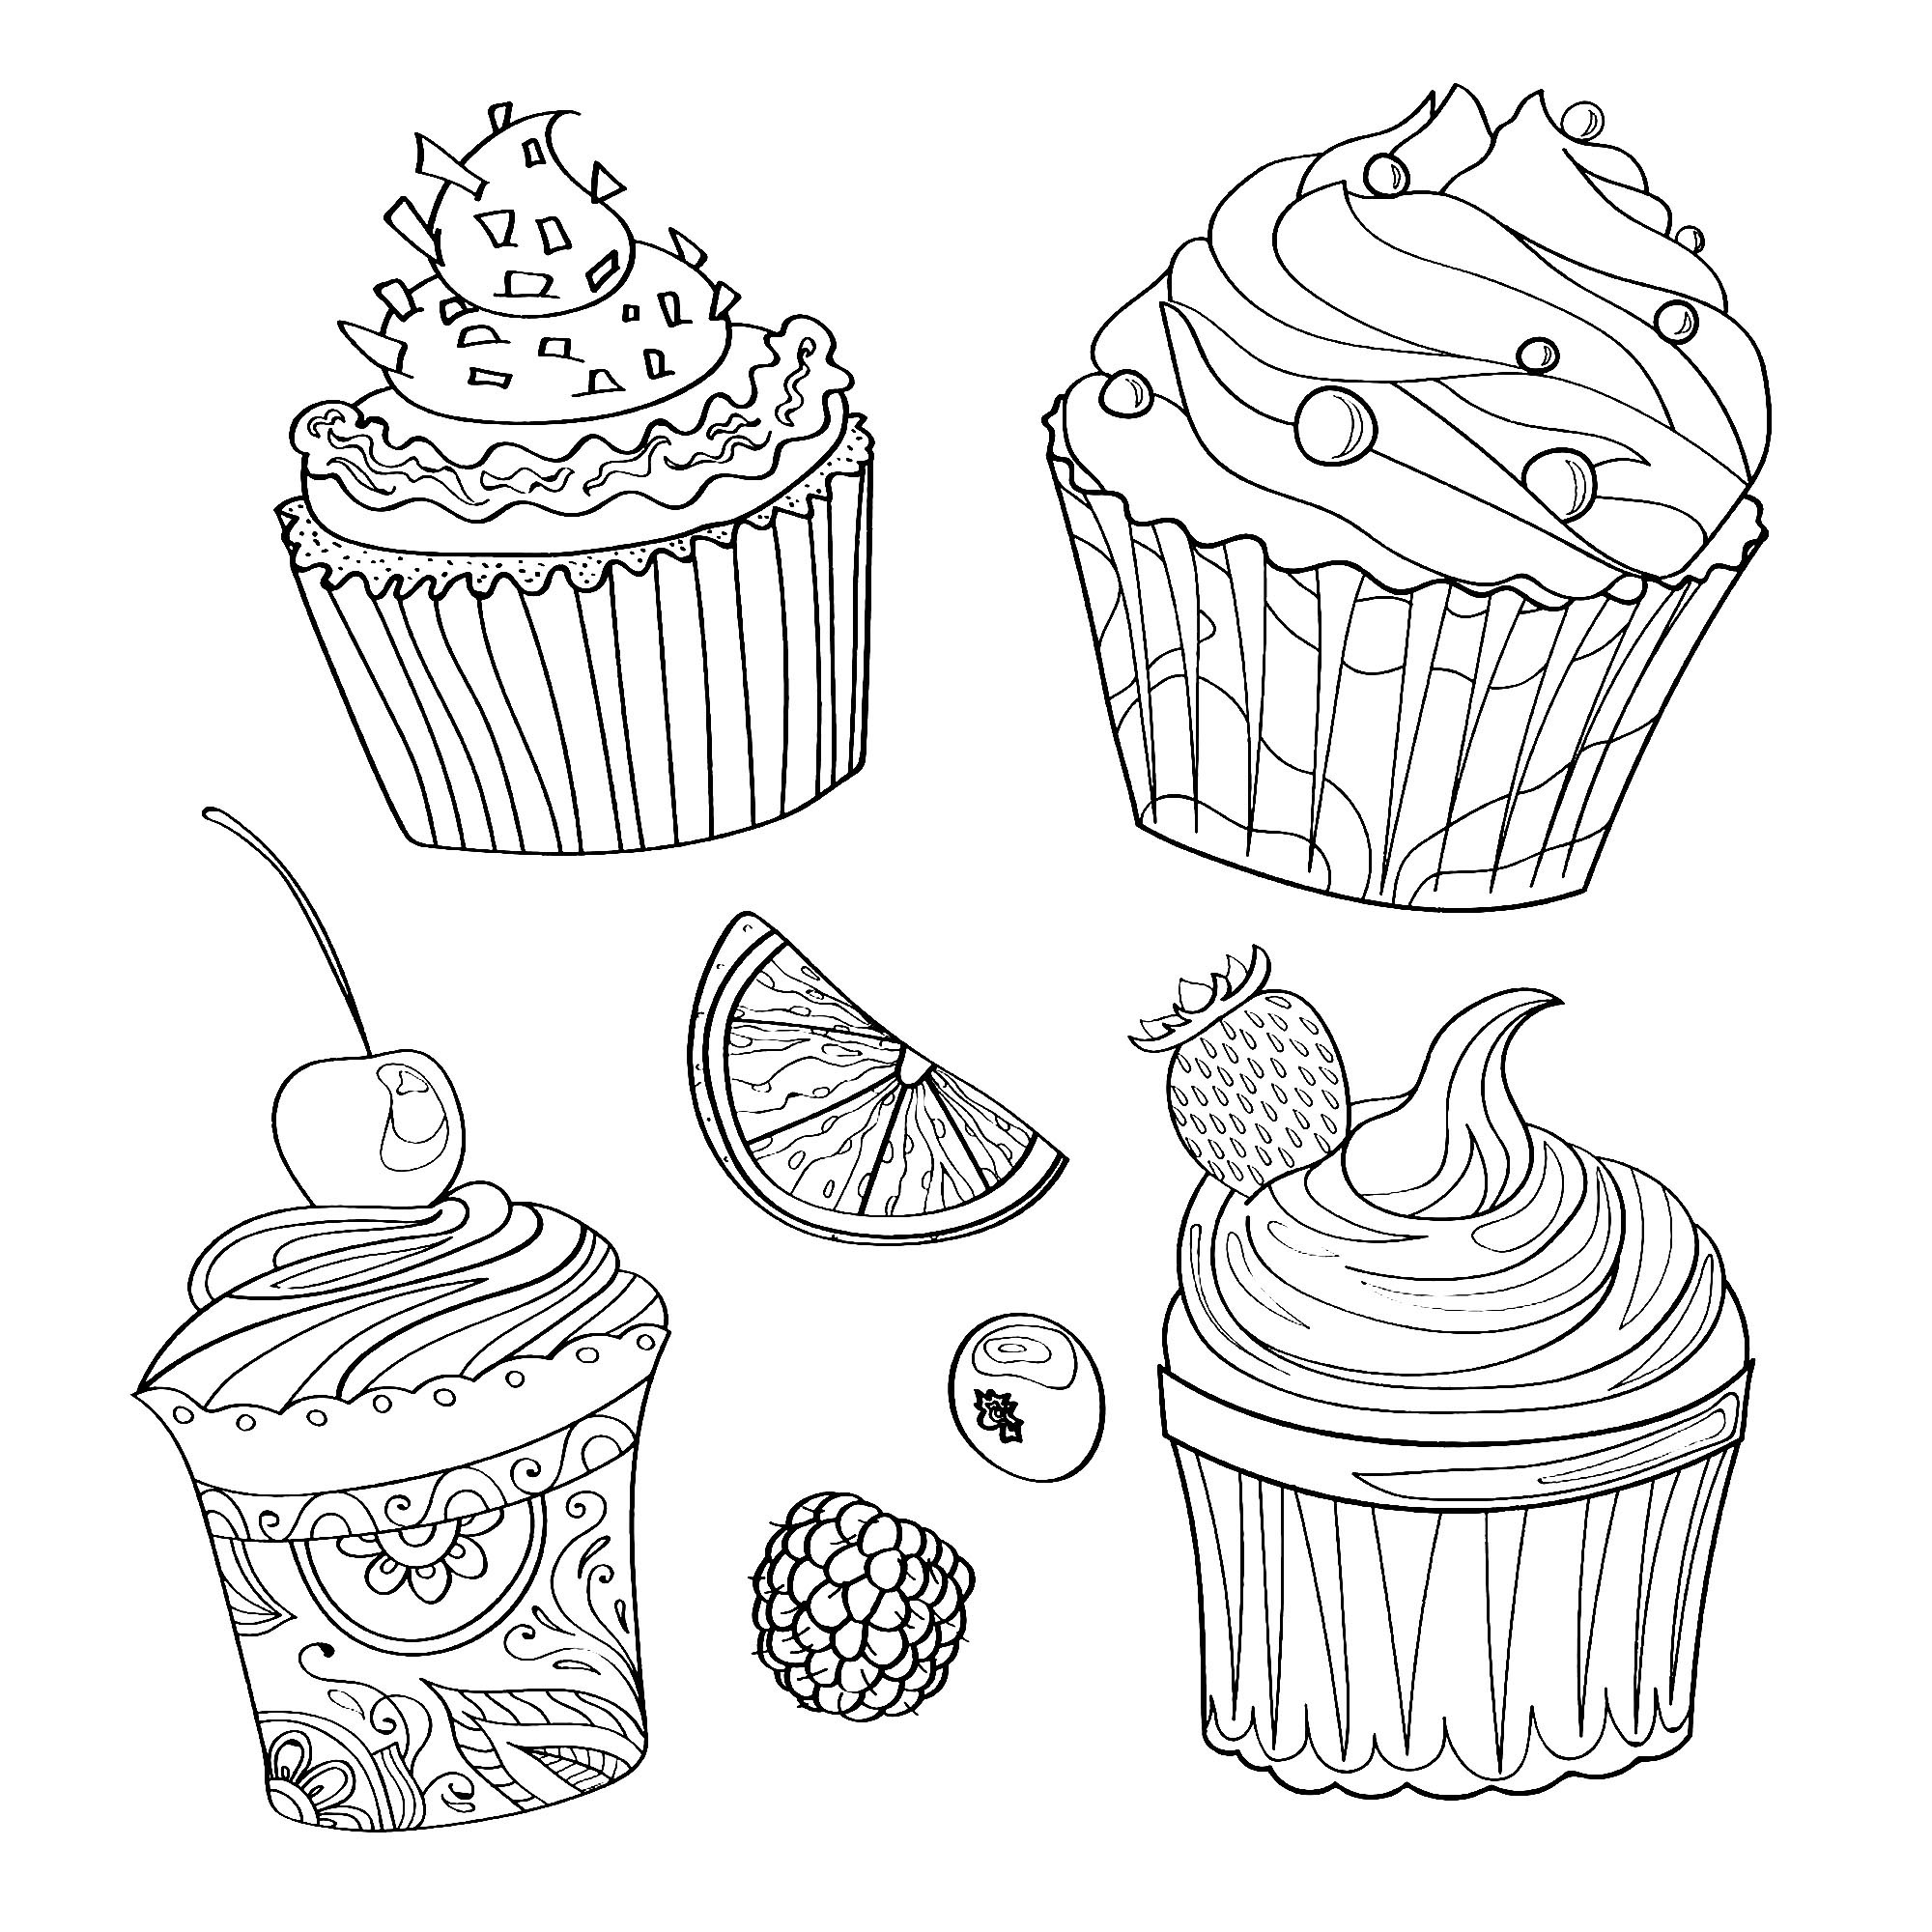 Cup cake coloring pictures